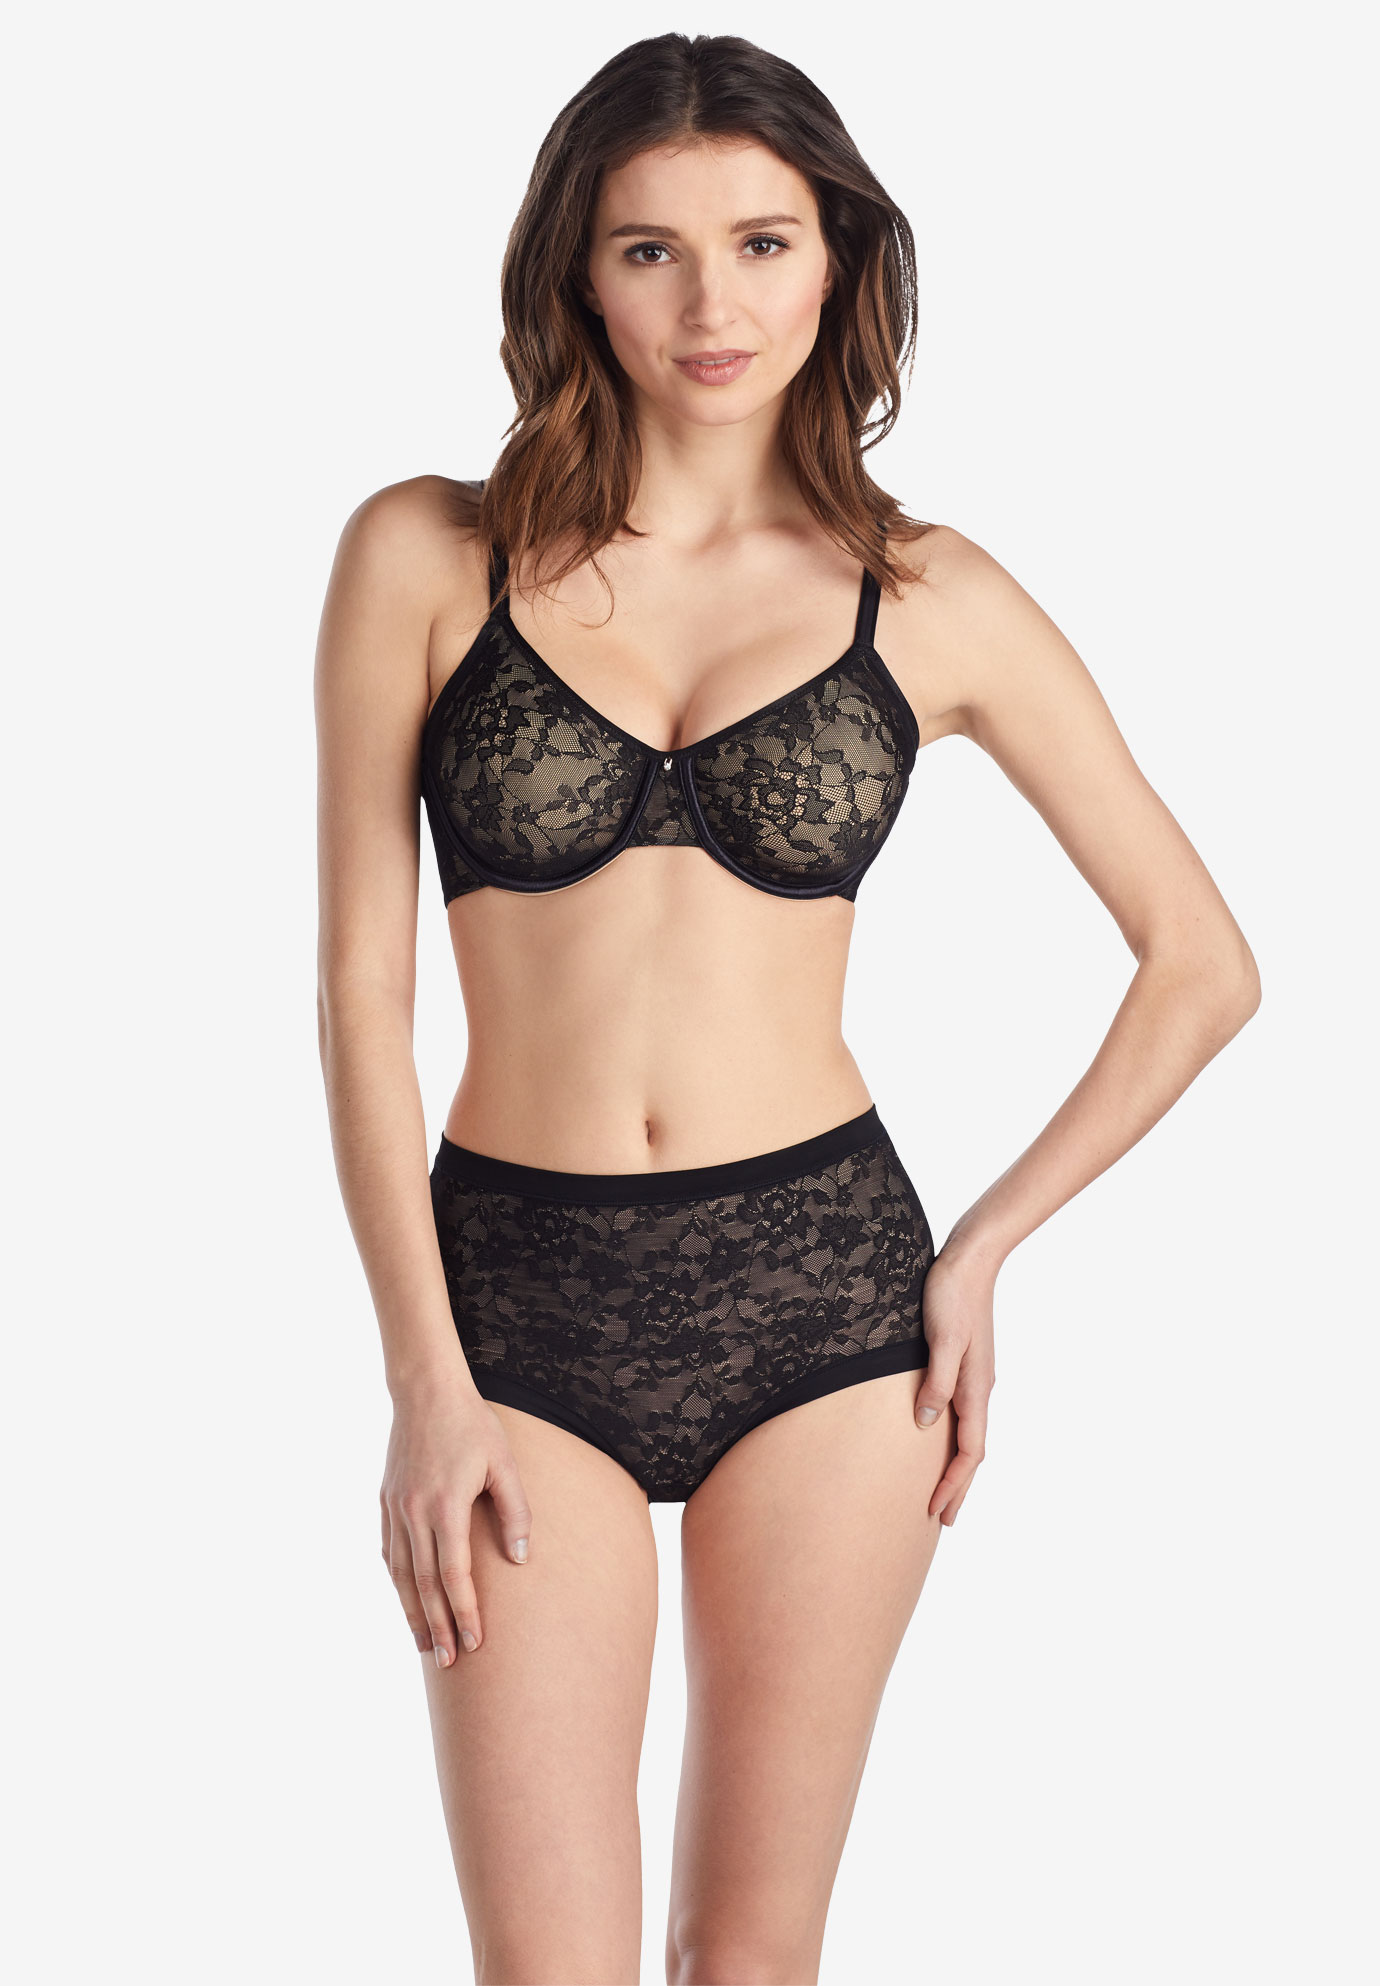 Le Mystere Lace Perfection Smoother Bra 7715,